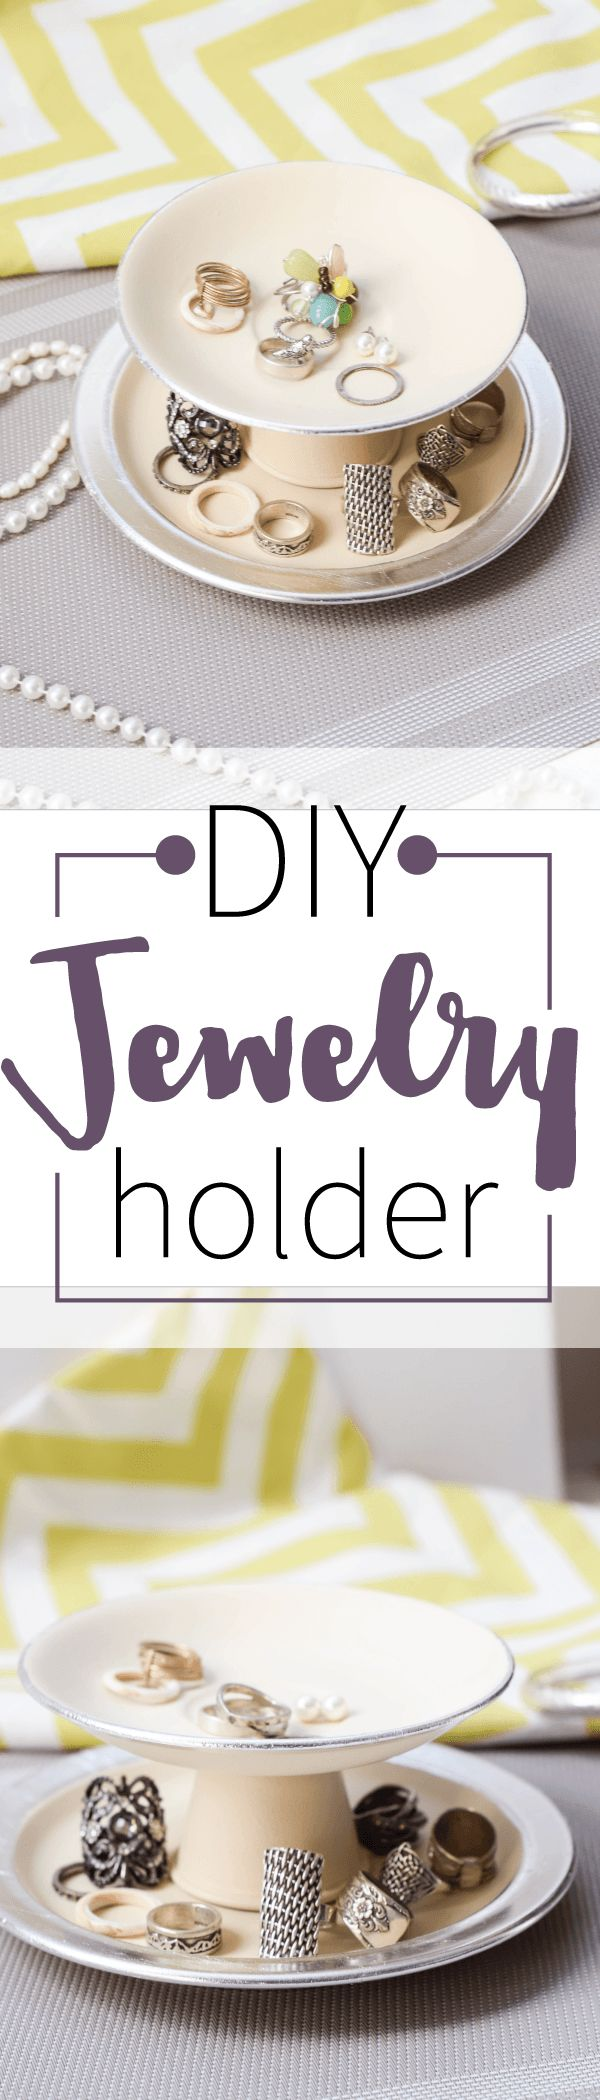 DIY jewelry holder - super easy and cheap to make. You won't believe what a bit of spray paint and 2 old saucers and a shot glass can do!